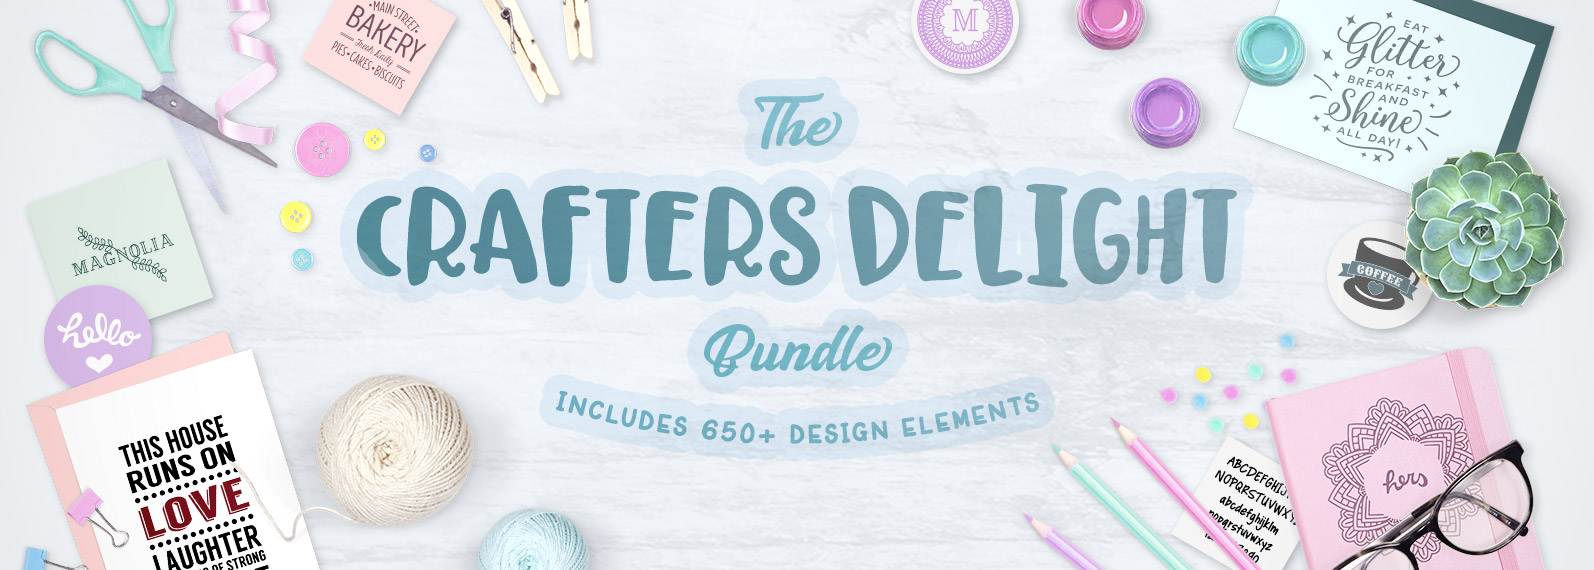 Crafters Delight Bundle Cover